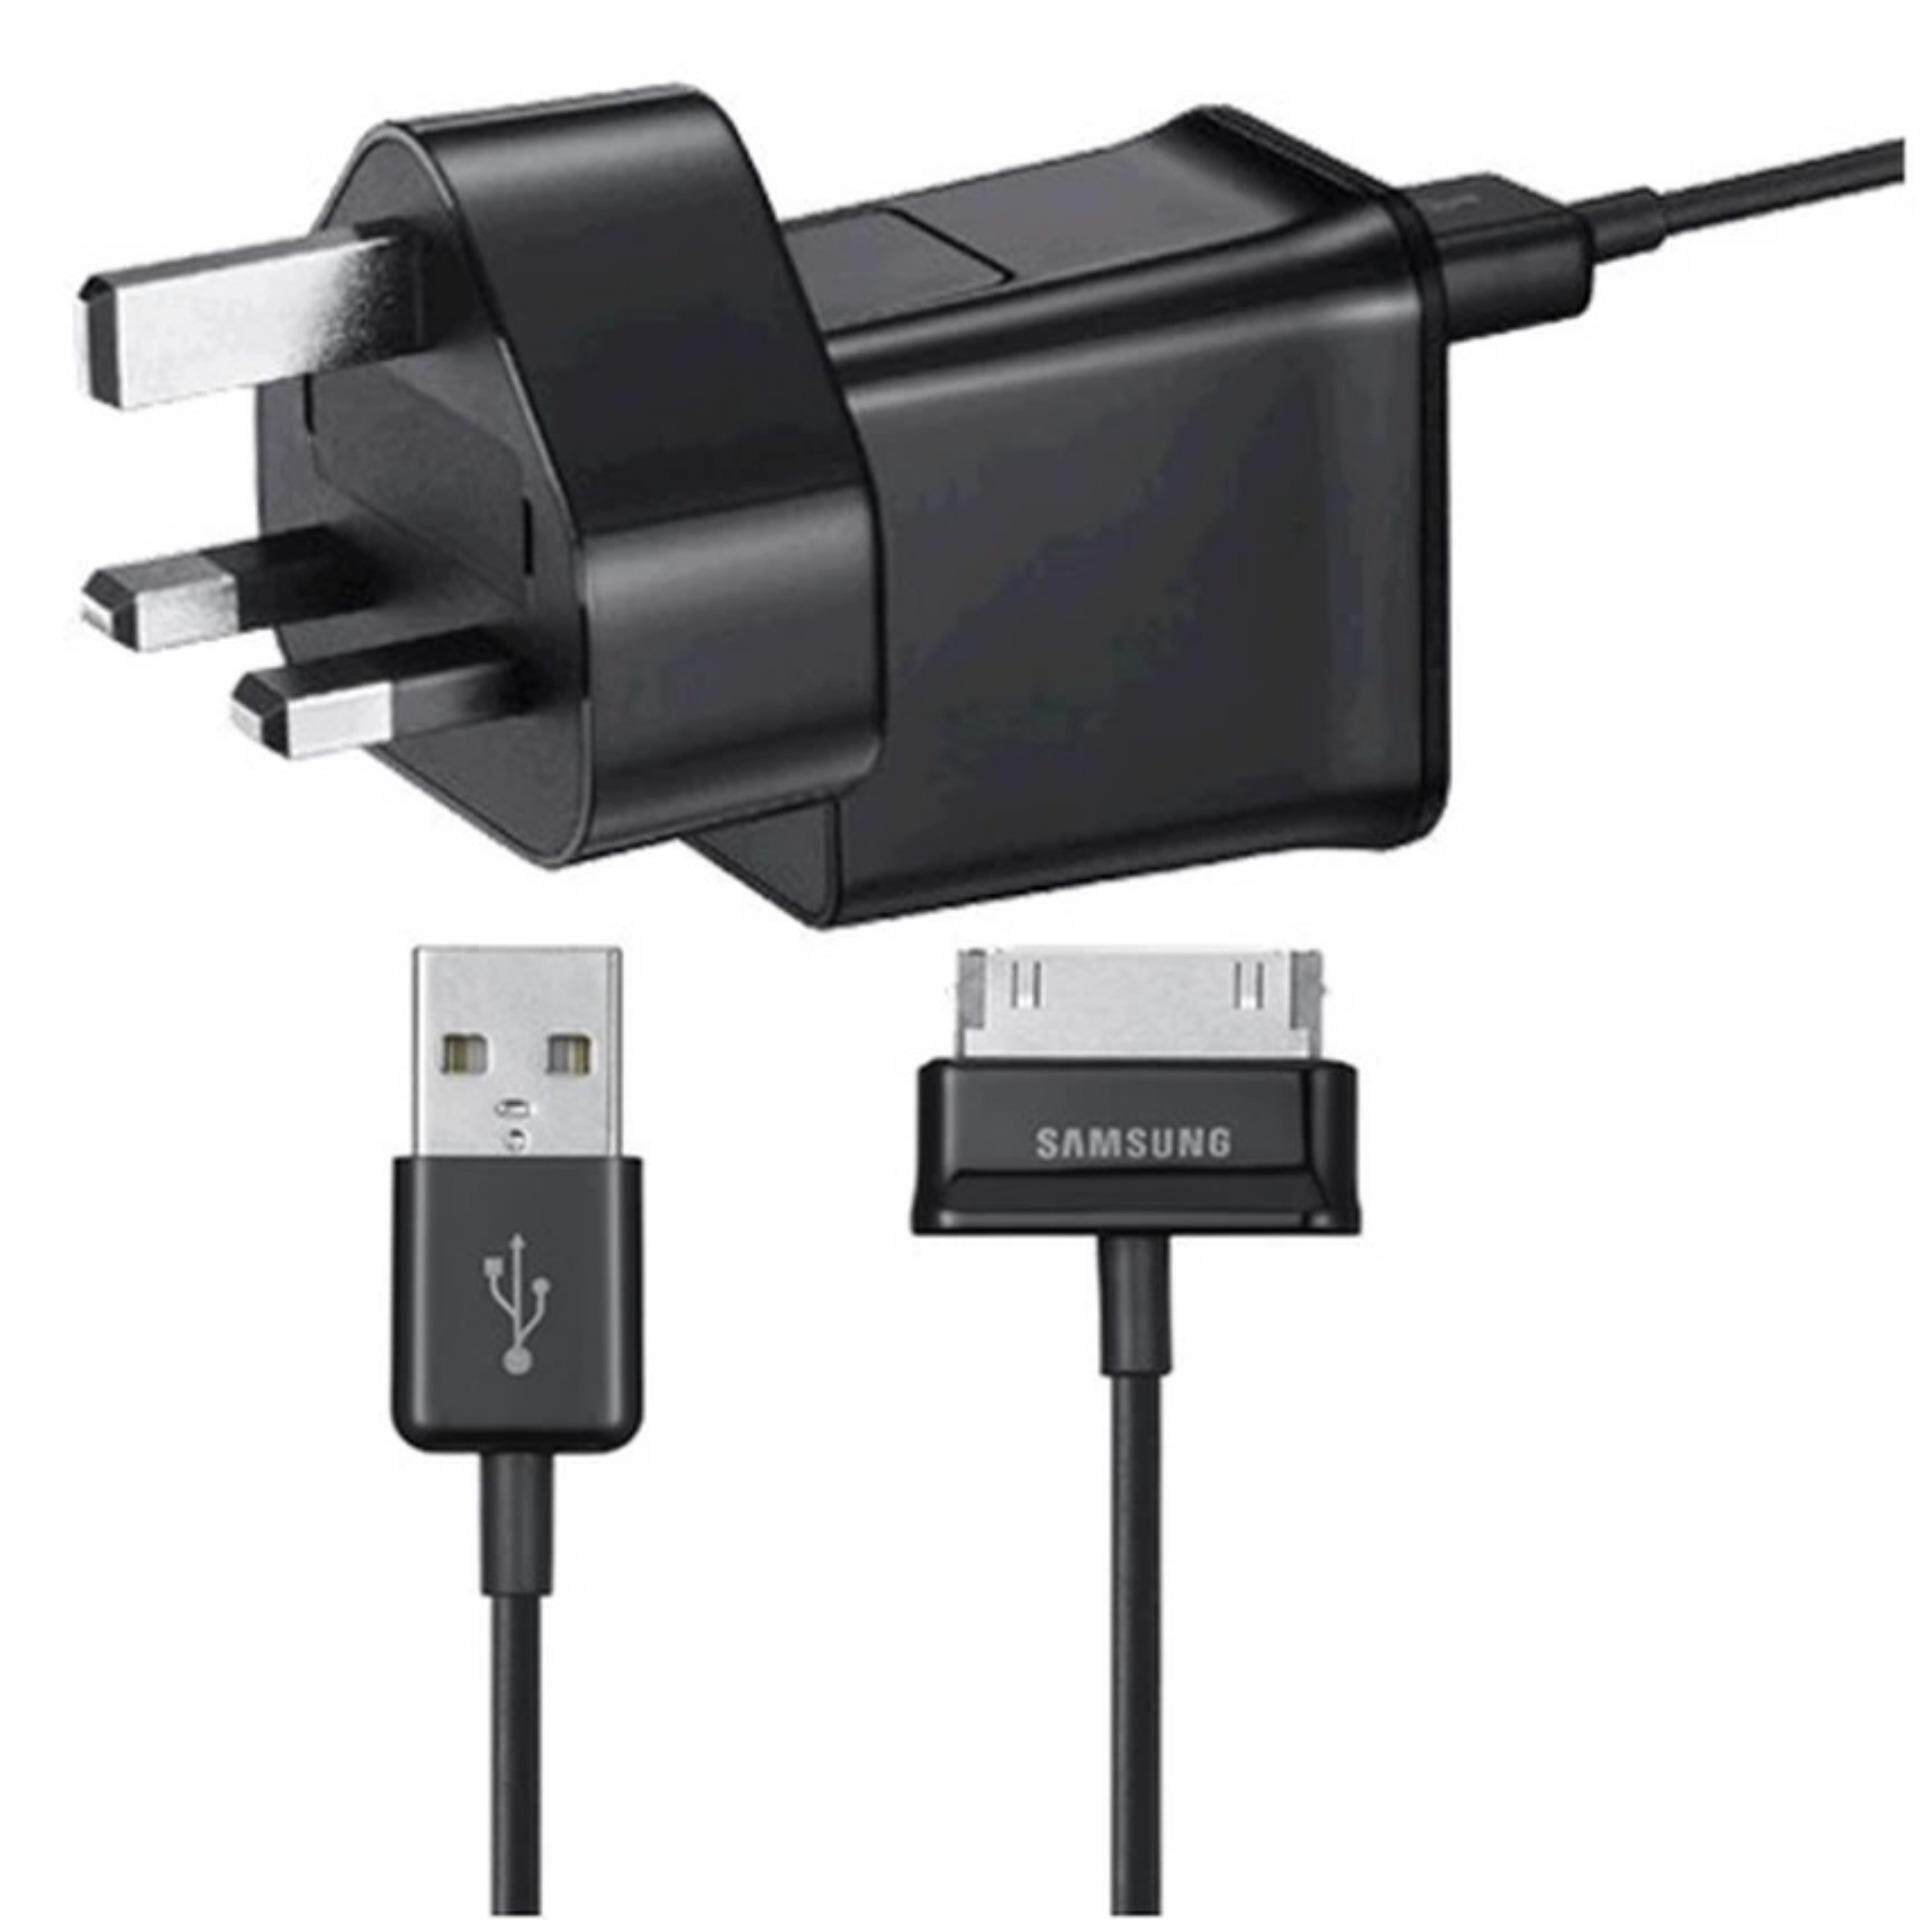 Samsung Wired Chargers For Phones Price In Malaysia Best Traveller Charger Delcell 21a 2a Travel Adapter Compatible Galaxy Tab 1 And 2 P1000